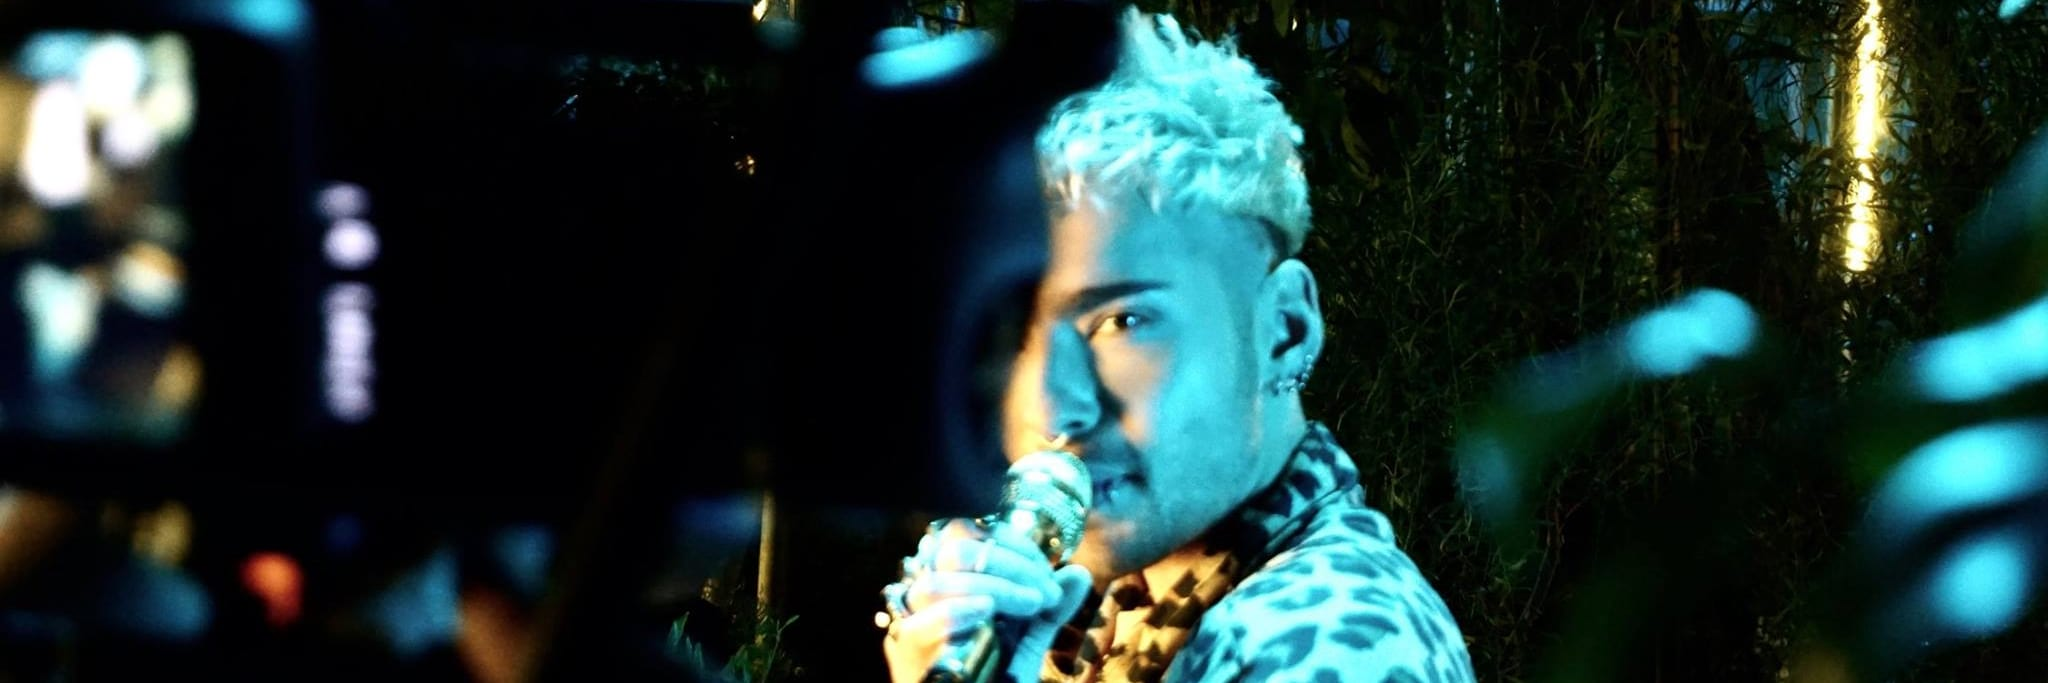 What If: Confira trailer do novo clipe do Tokio Hotel